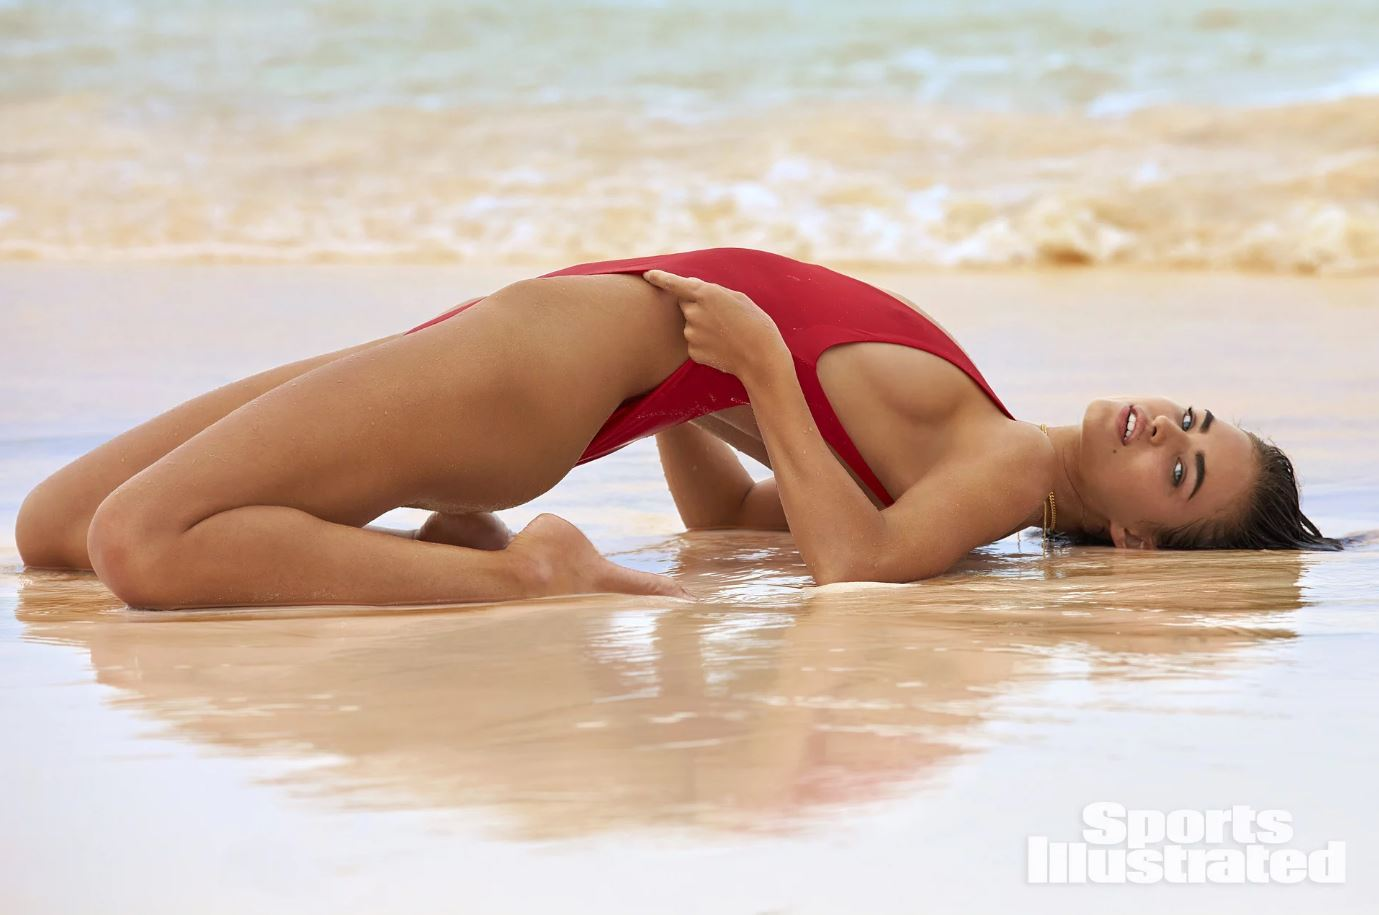 Robin Holzken Hot Red Swimsuit Pose Wallpapers - Robin Holzken Hot Red Swimsuit Pose Wallpapers